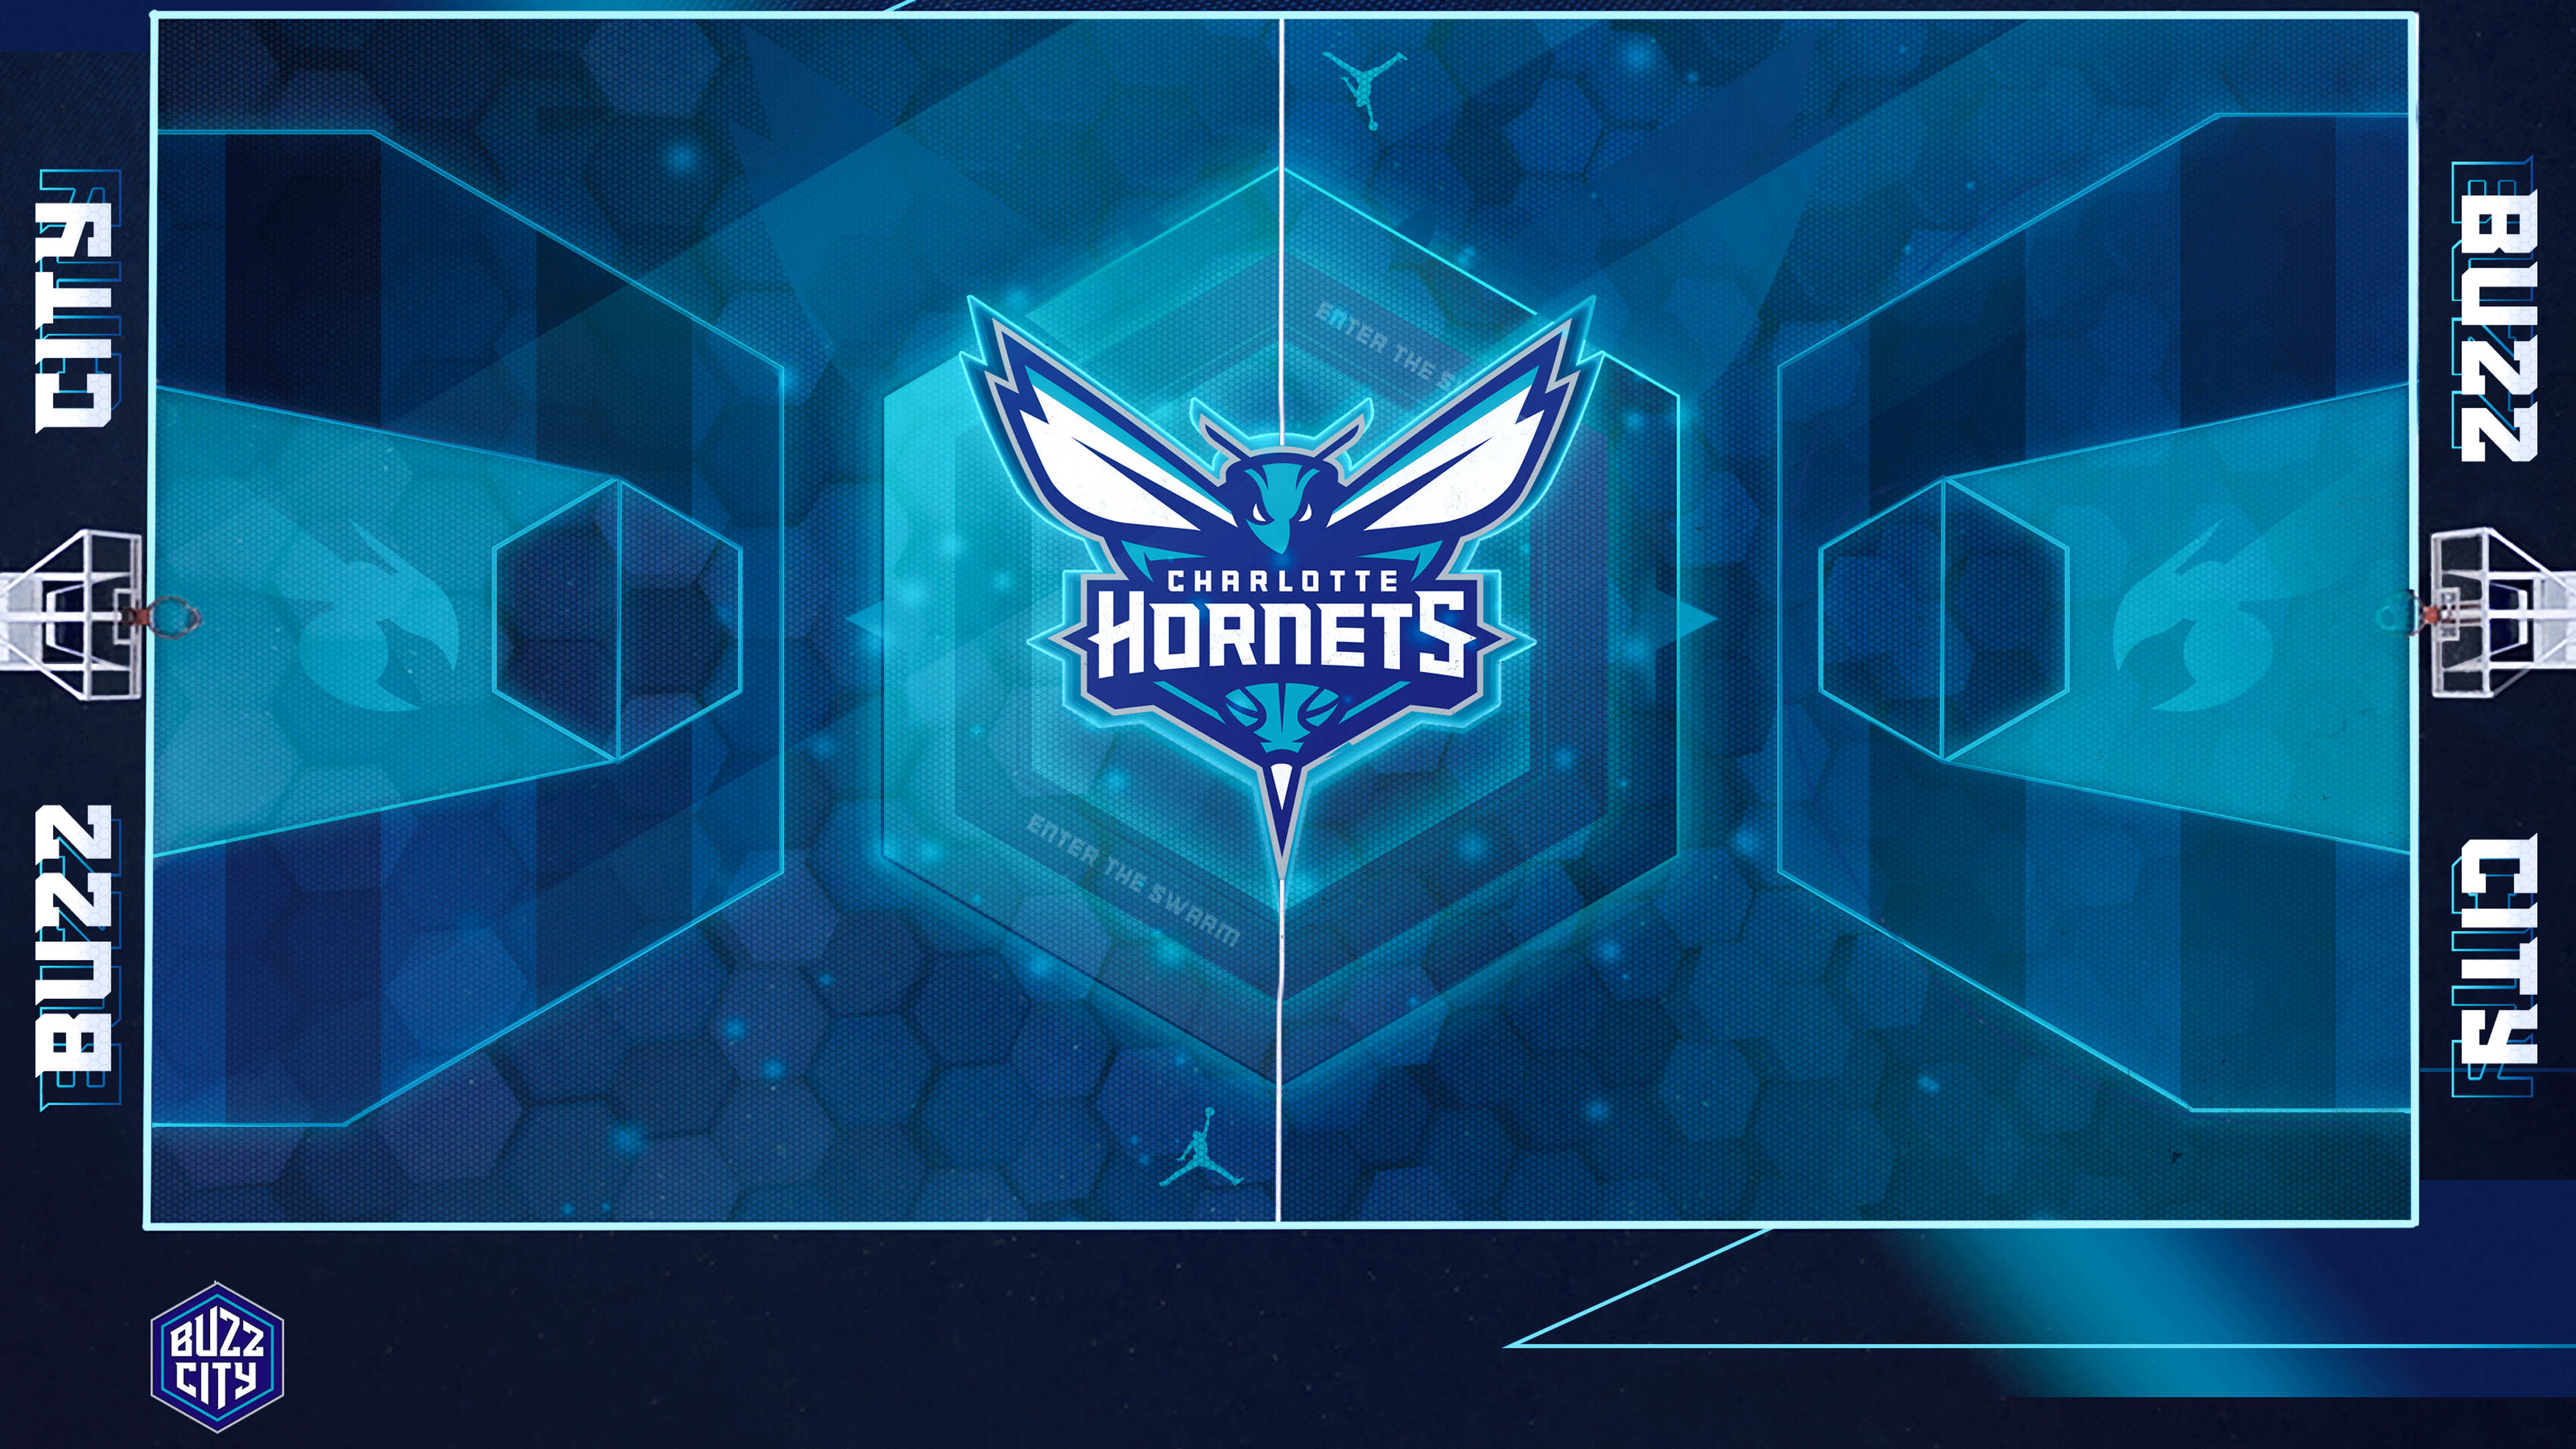 Charlotte Hornets outdoors court